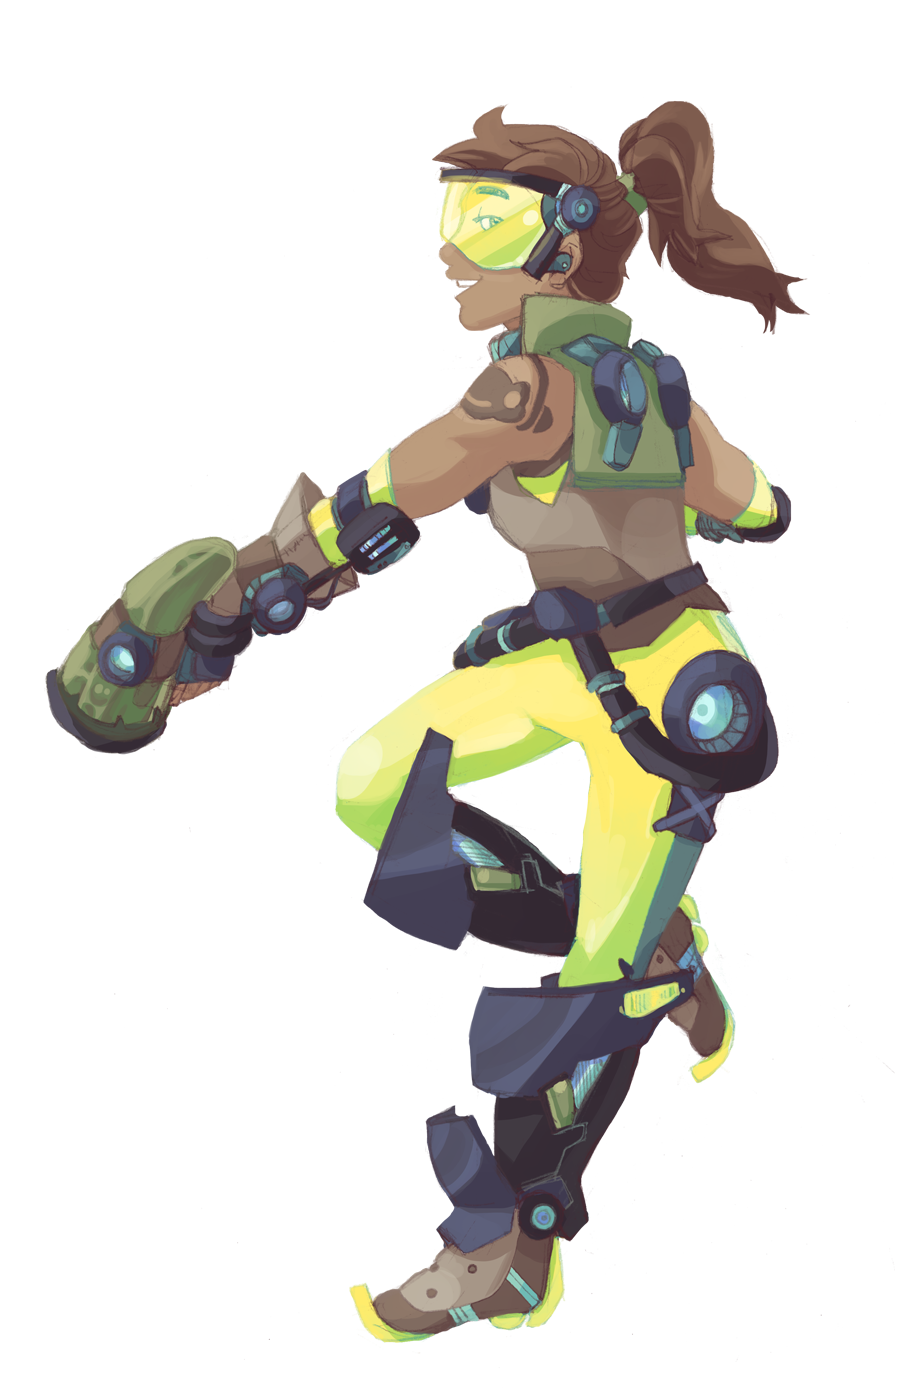 Lucio drawing overwatch character. Tracer and l cio